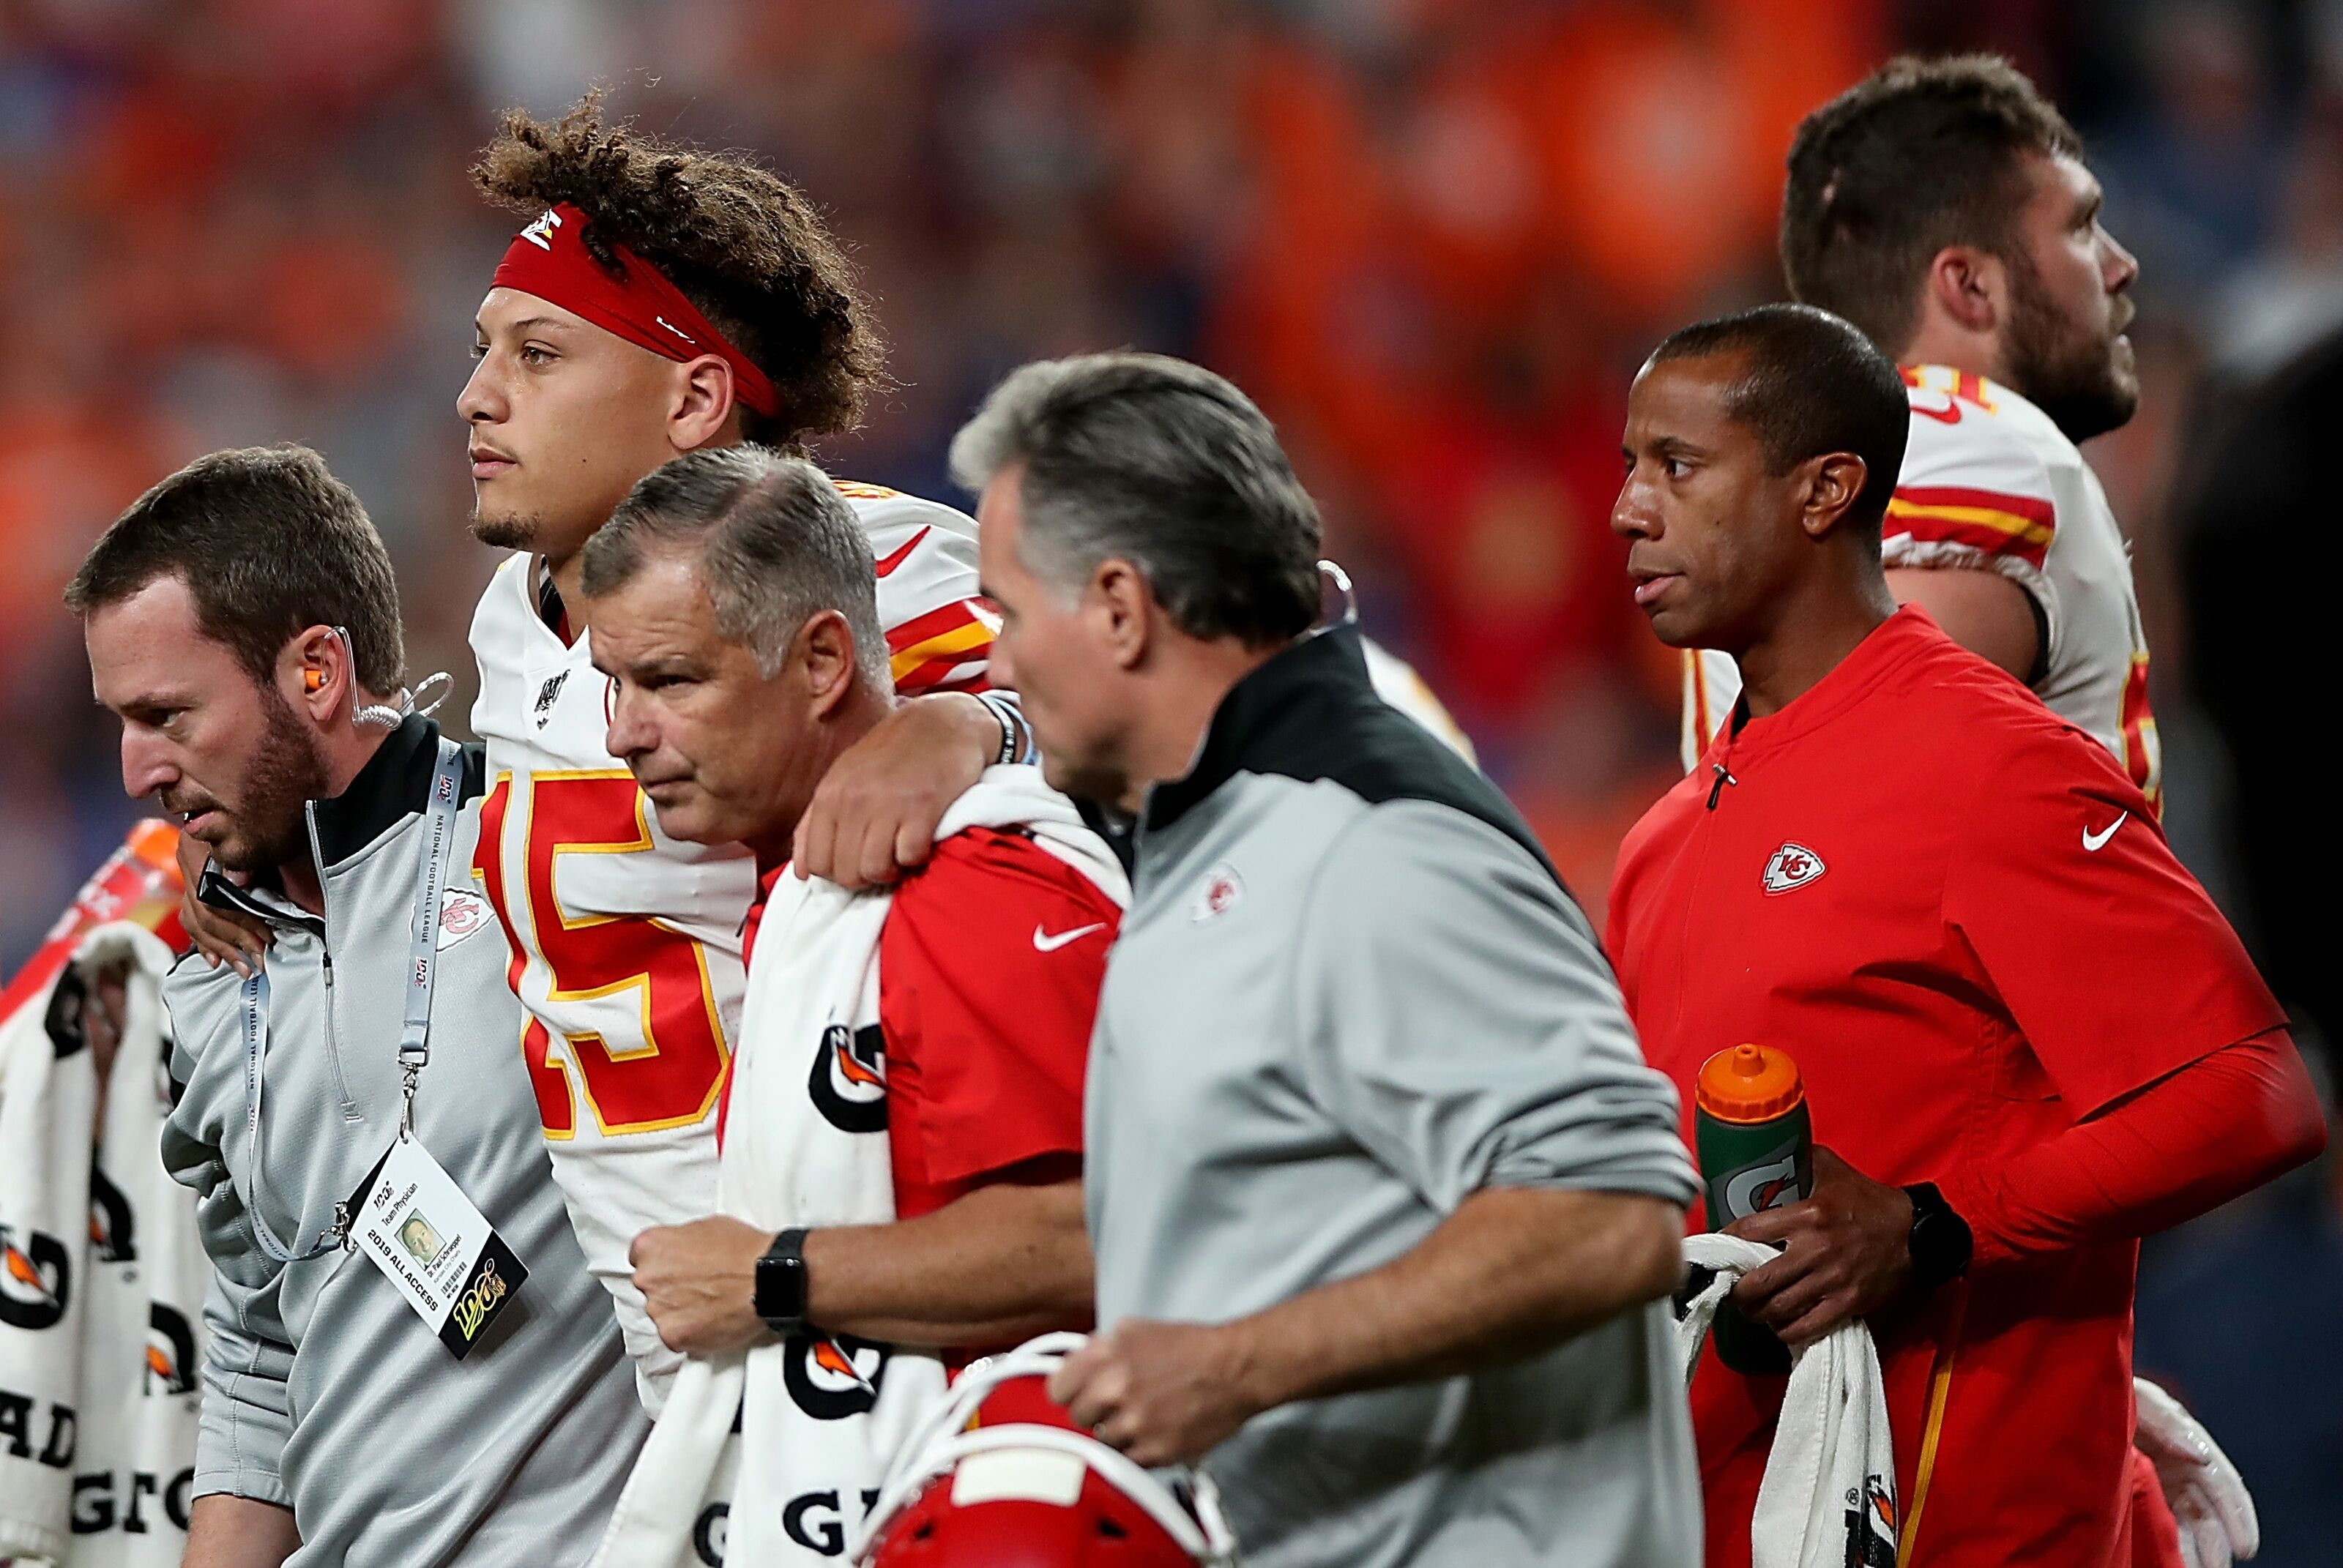 Patrick Mahomes: How long is recovery time for dislocated knee?